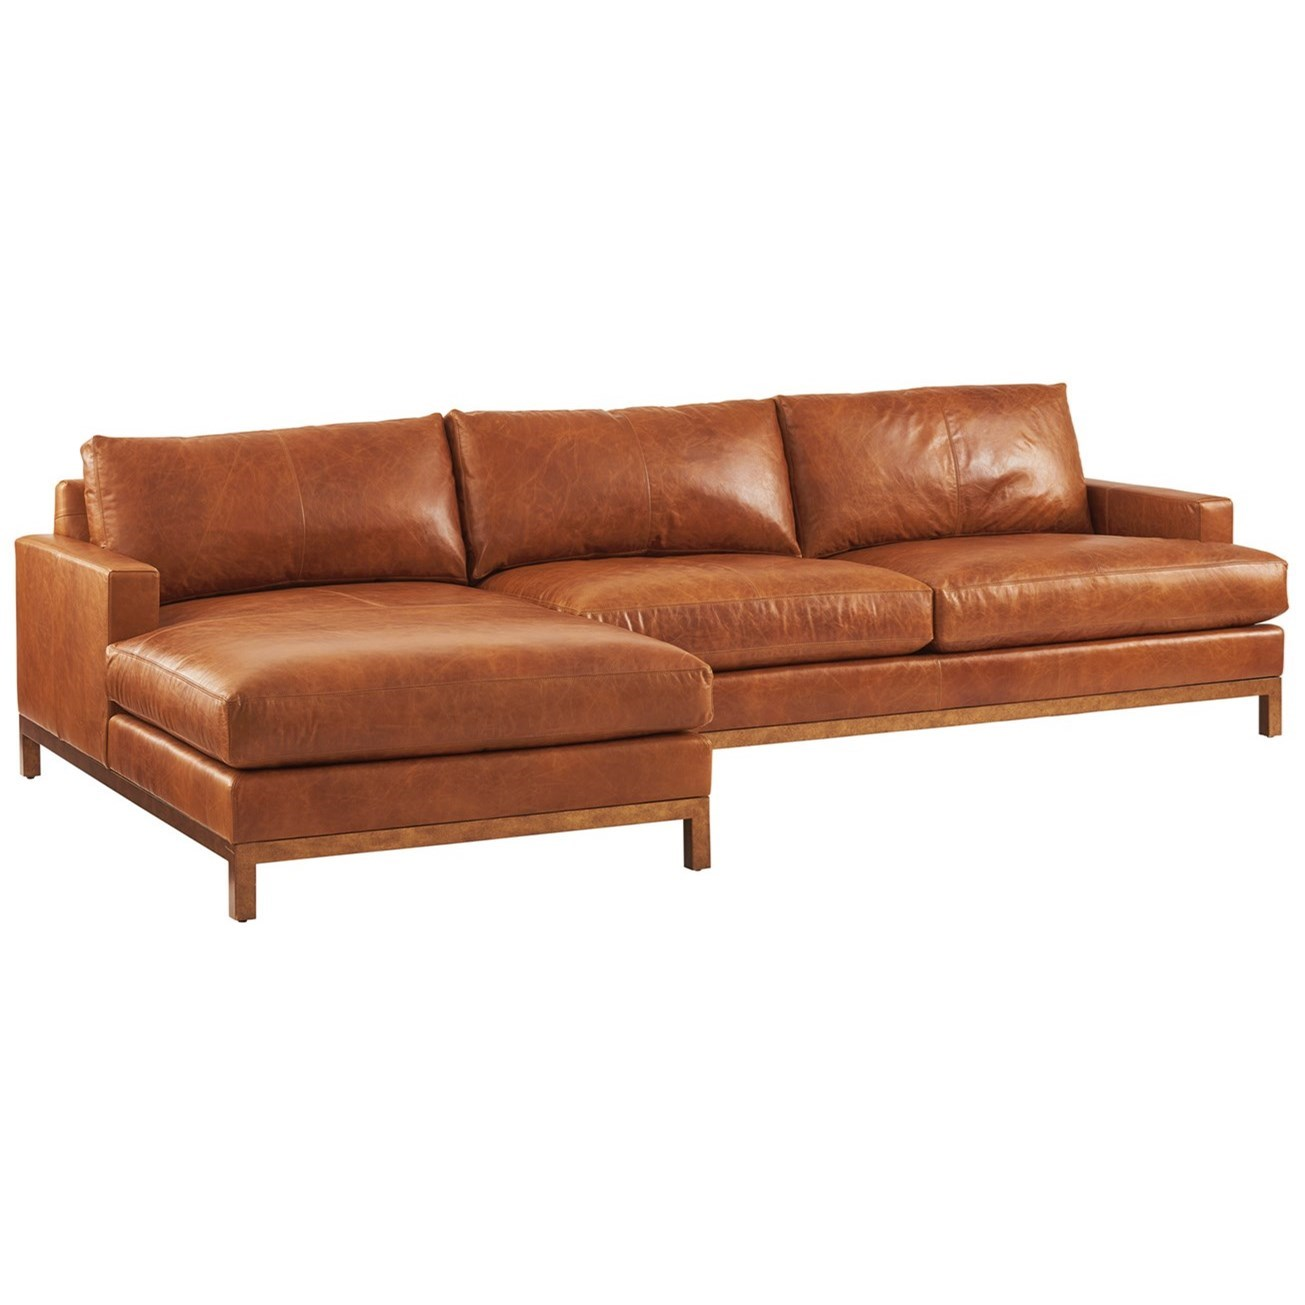 Barclay Butera Upholstery 2-Piece Leather Sectional Sofa w/Brass Base by Barclay Butera at Baer's Furniture